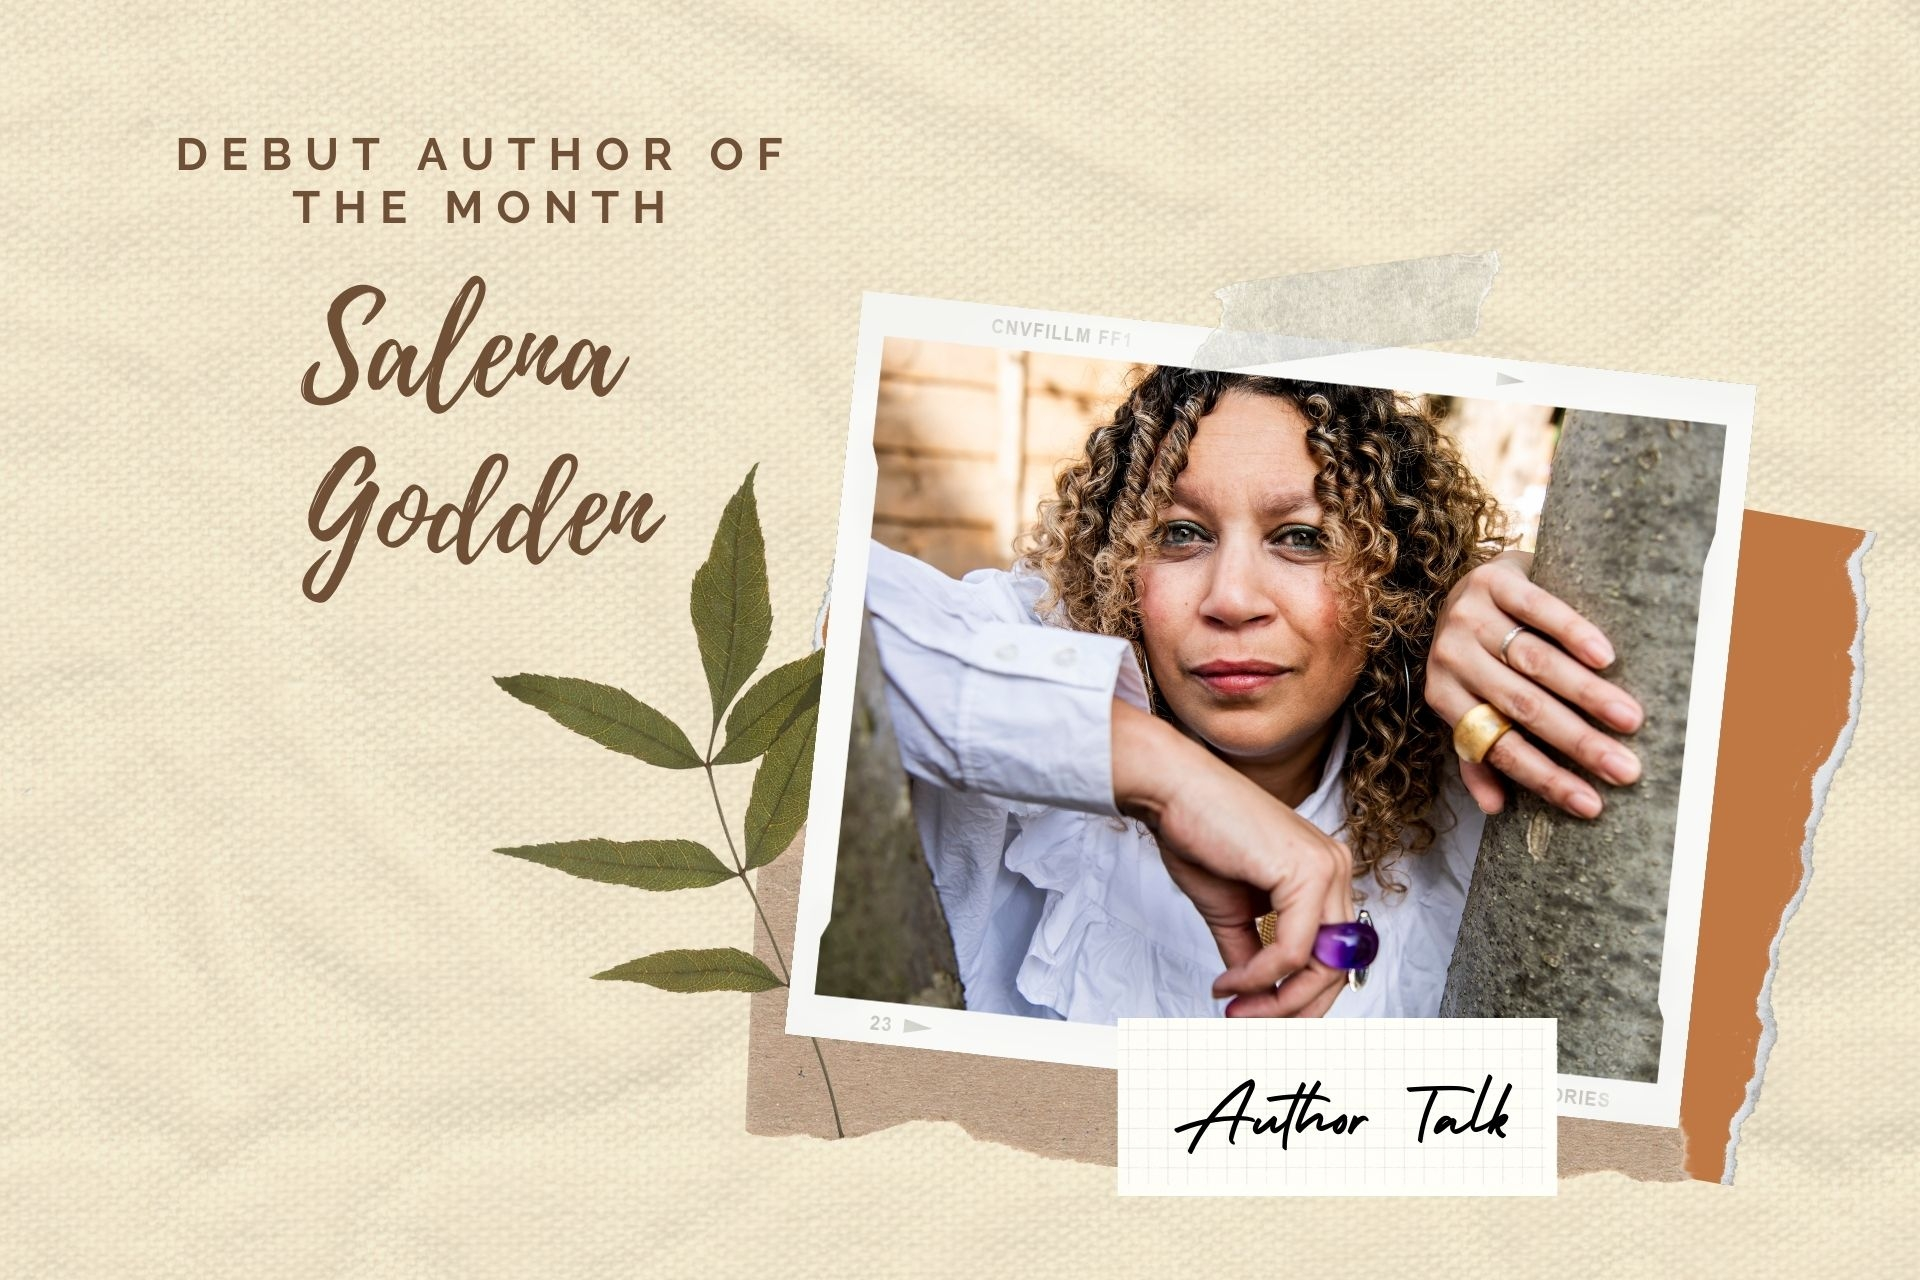 Debut Author of the Month: Salena Godden